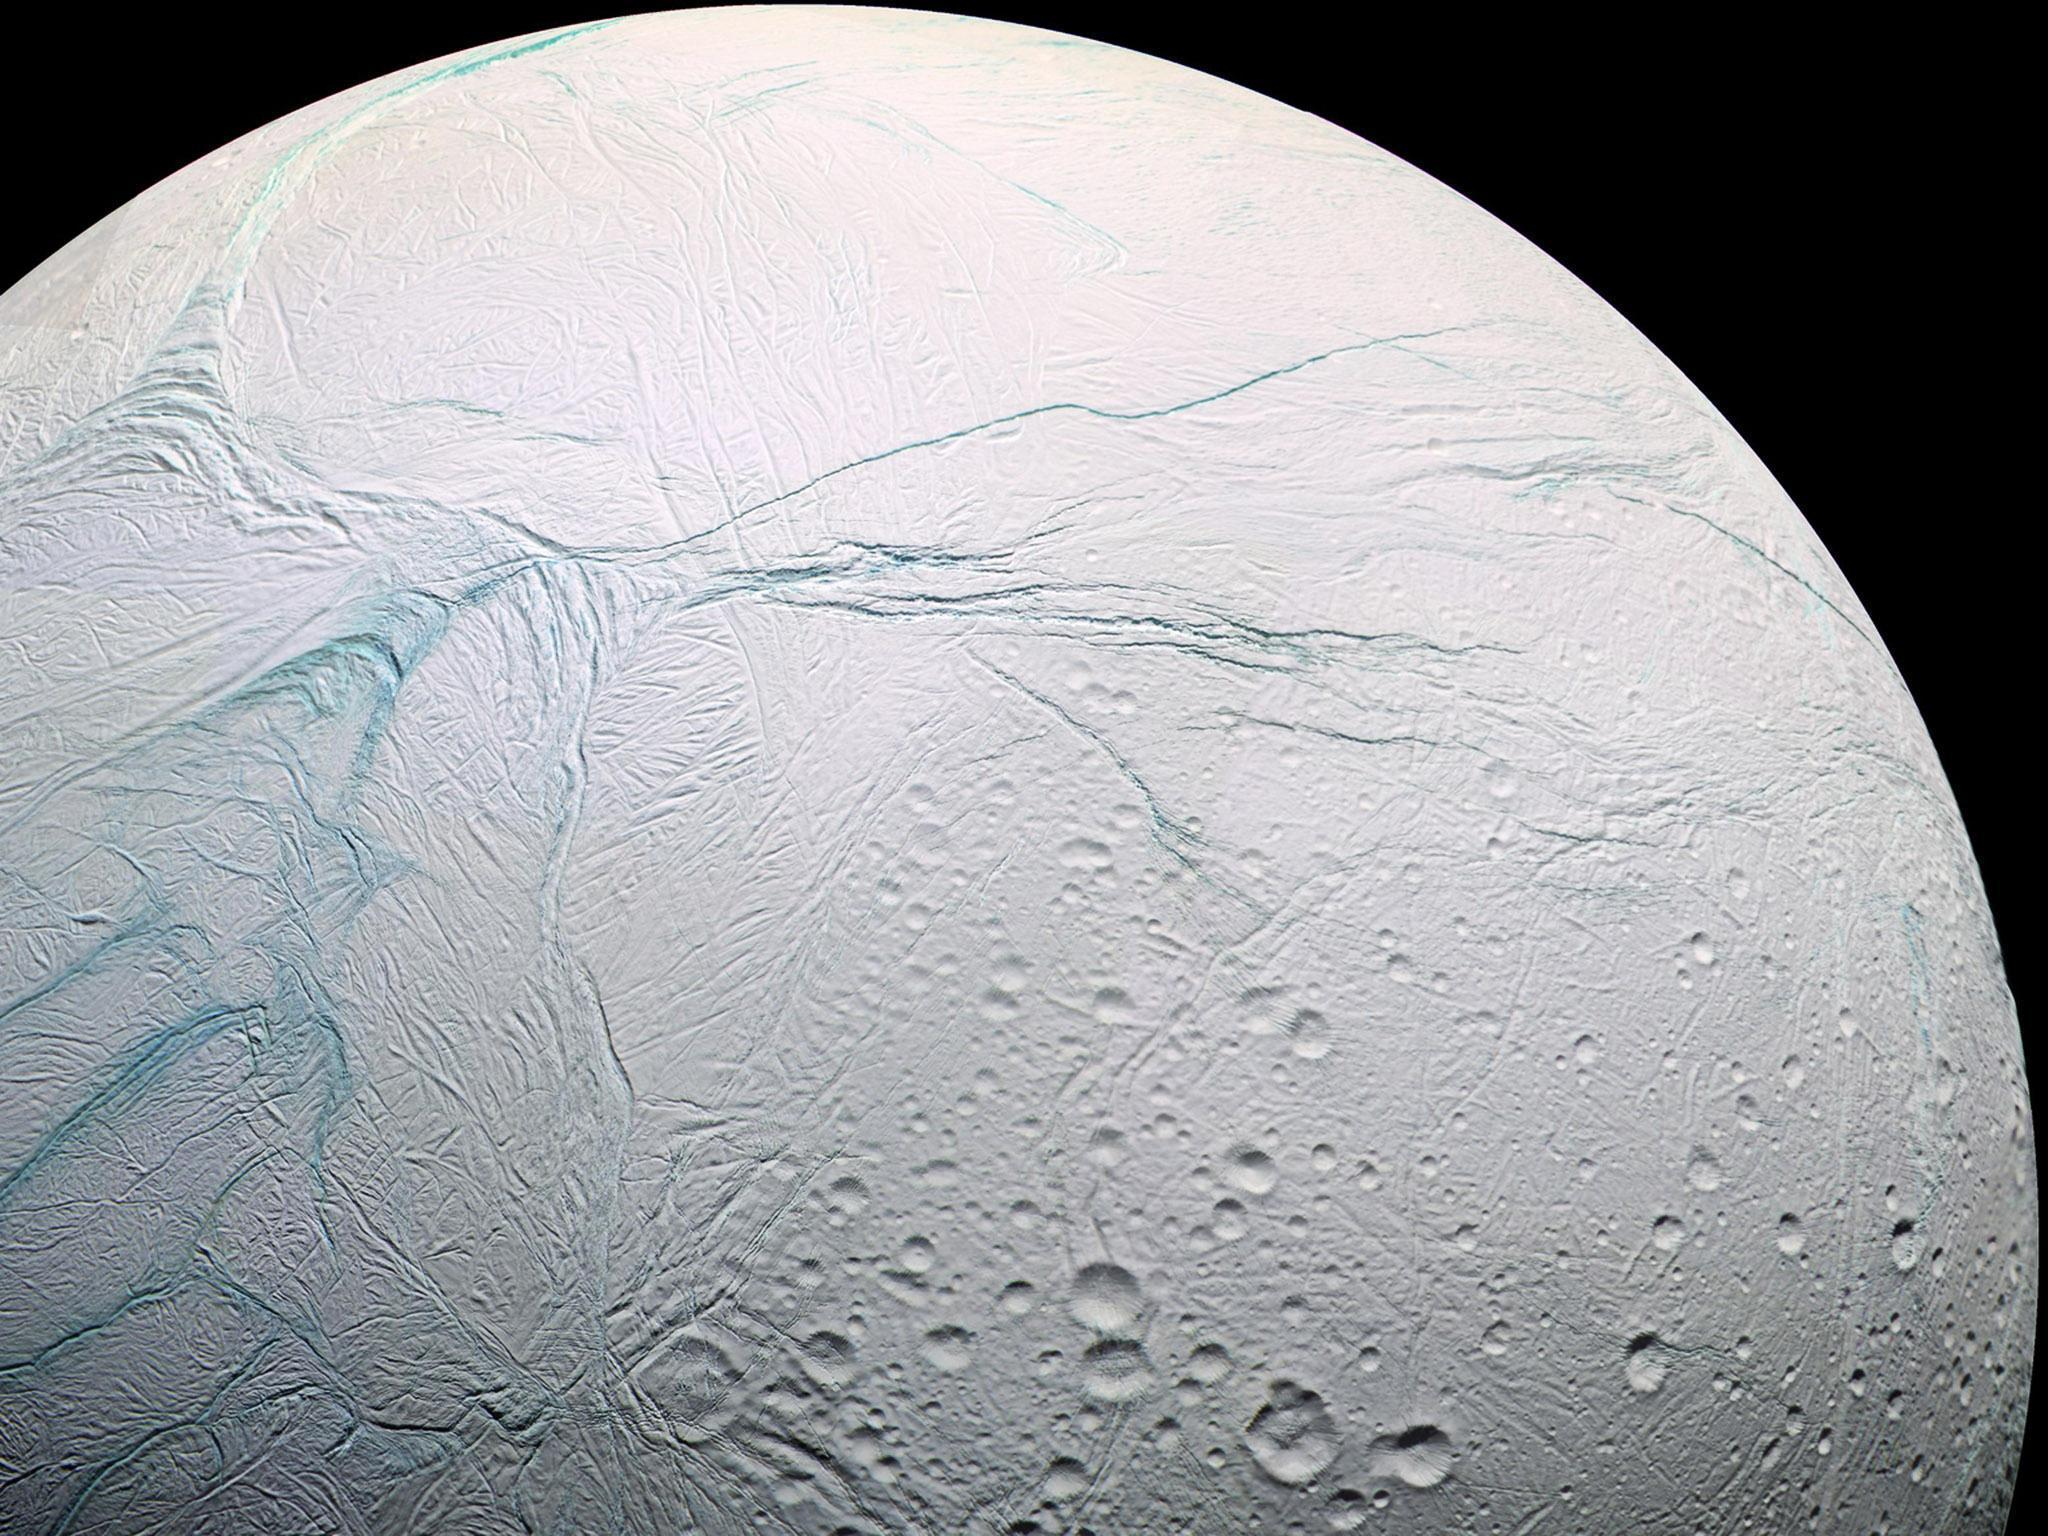 New data from Nasa spacecraft 'challenges our understanding of how the solar system works', scientists announce